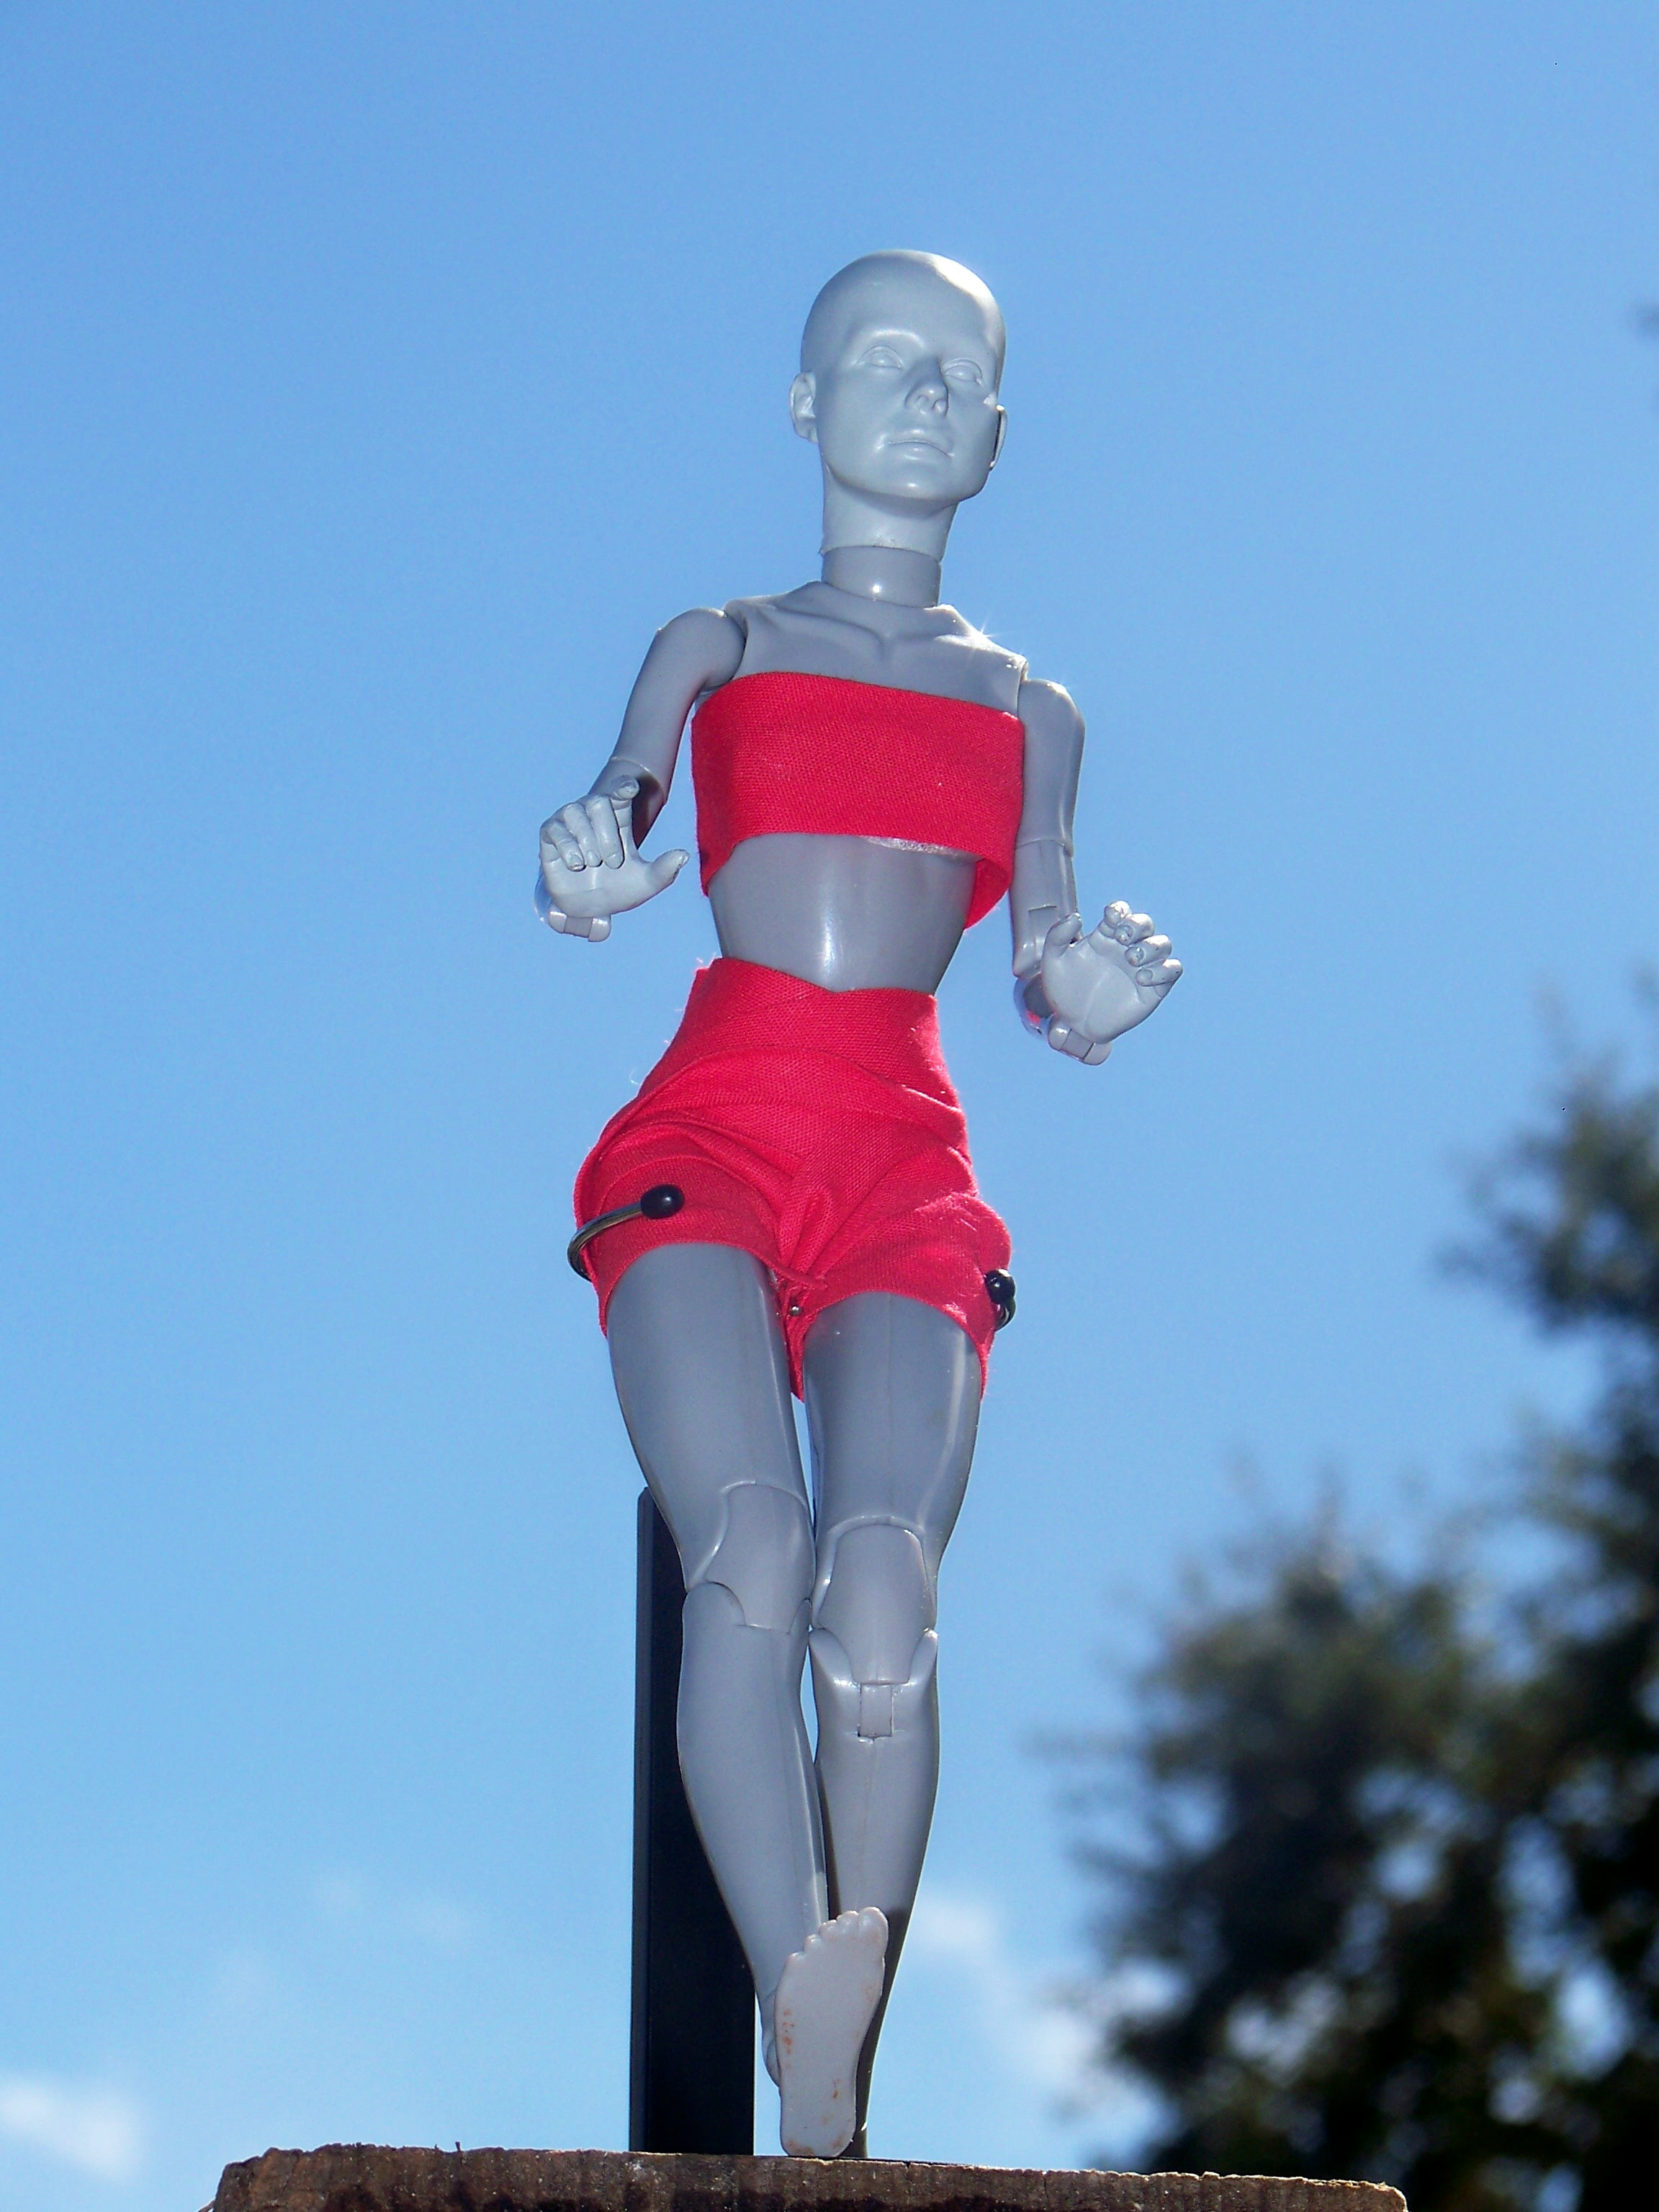 Plastic artist model demonstrating heel brake stance